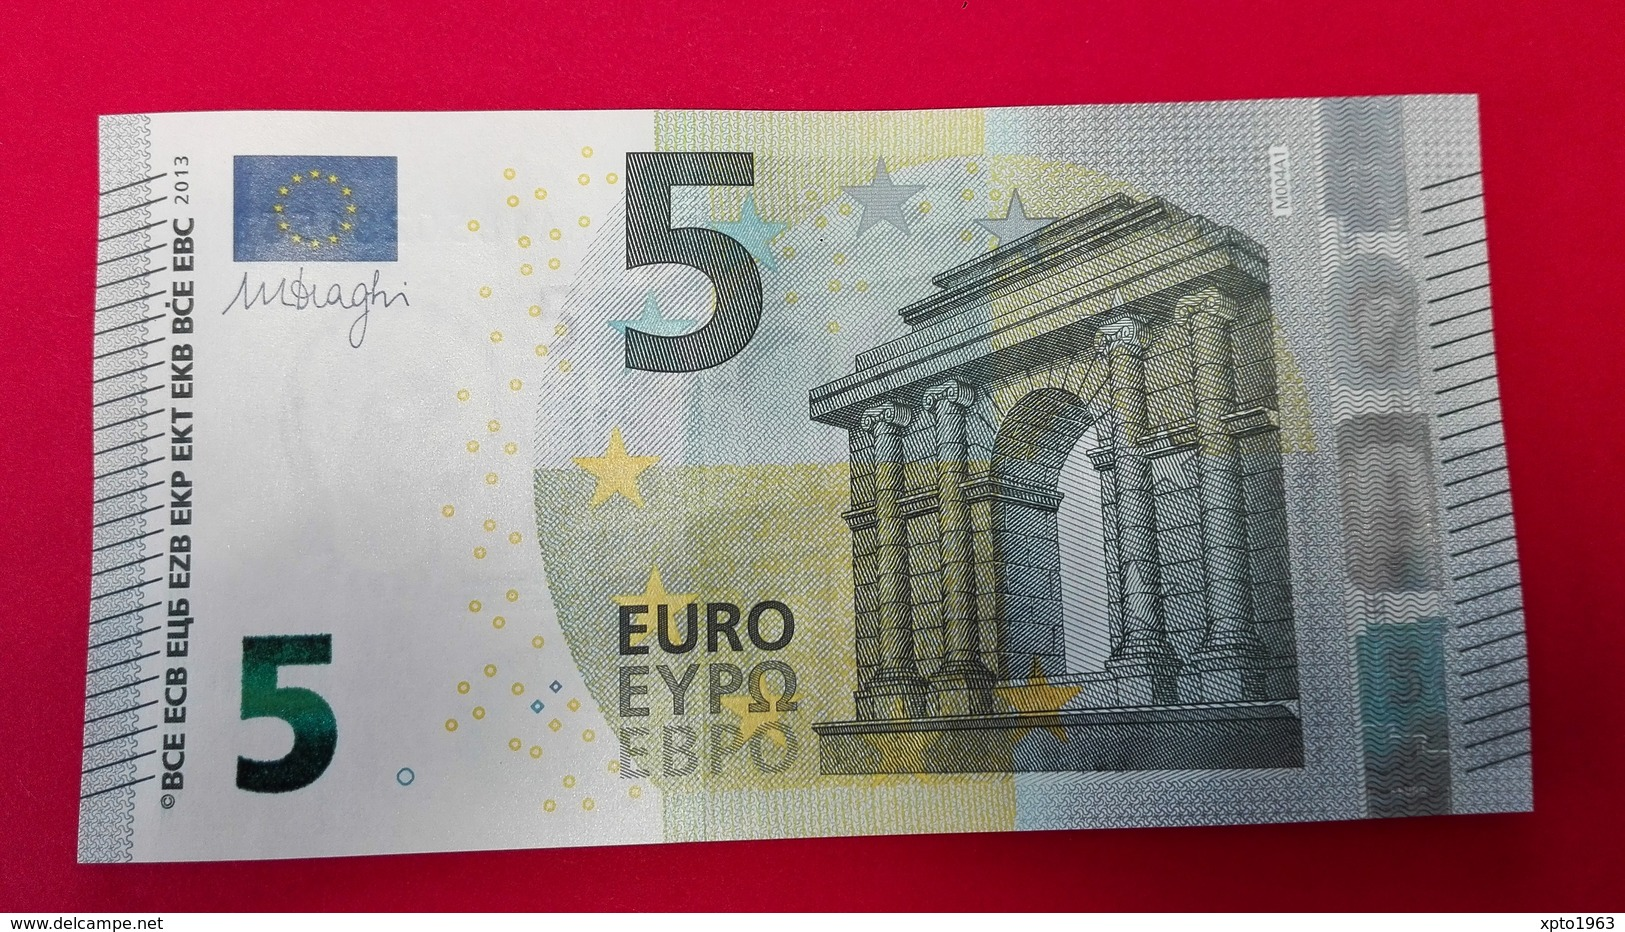 5 EURO M004 A1 PORTUGAL M004A1 - Serial Number: MA1850281562 - UNC FDS NEUF - EURO